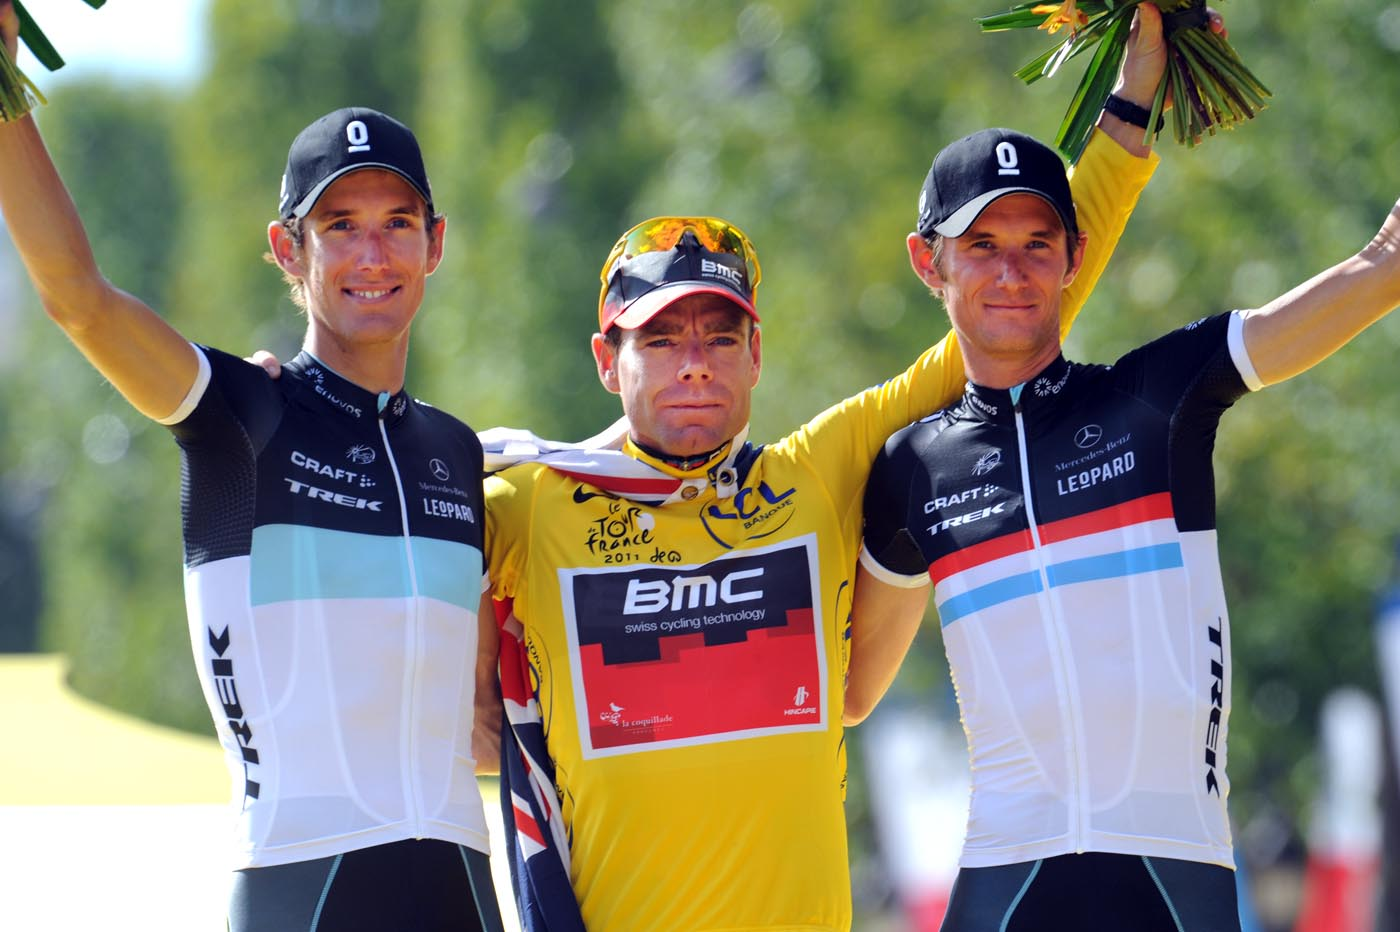 Evans and Schlecks on final podium, Tour de France 2011, stage 21